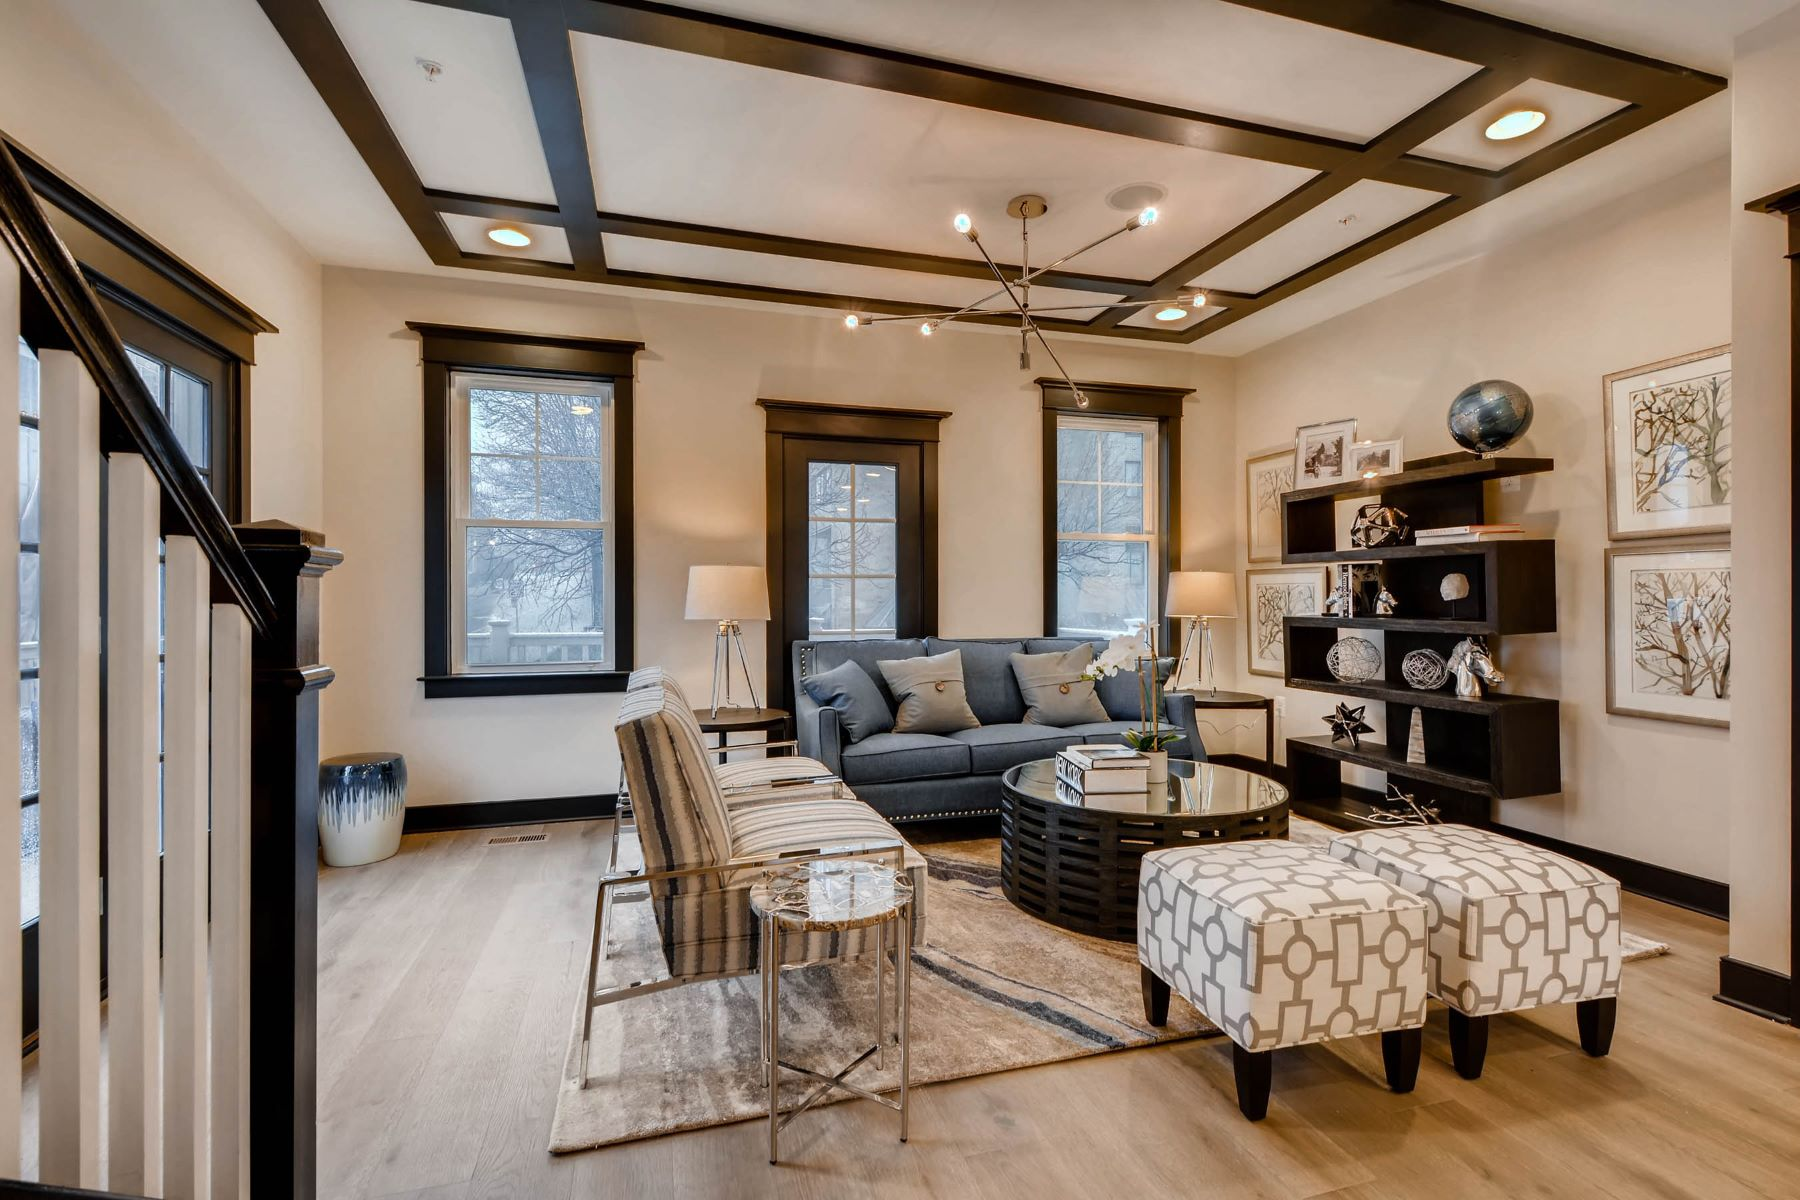 Additional photo for property listing at 208 East Pennsylvania Avenue 208 East Pennsylvania Avenue Towson, Maryland 21286 Vereinigte Staaten